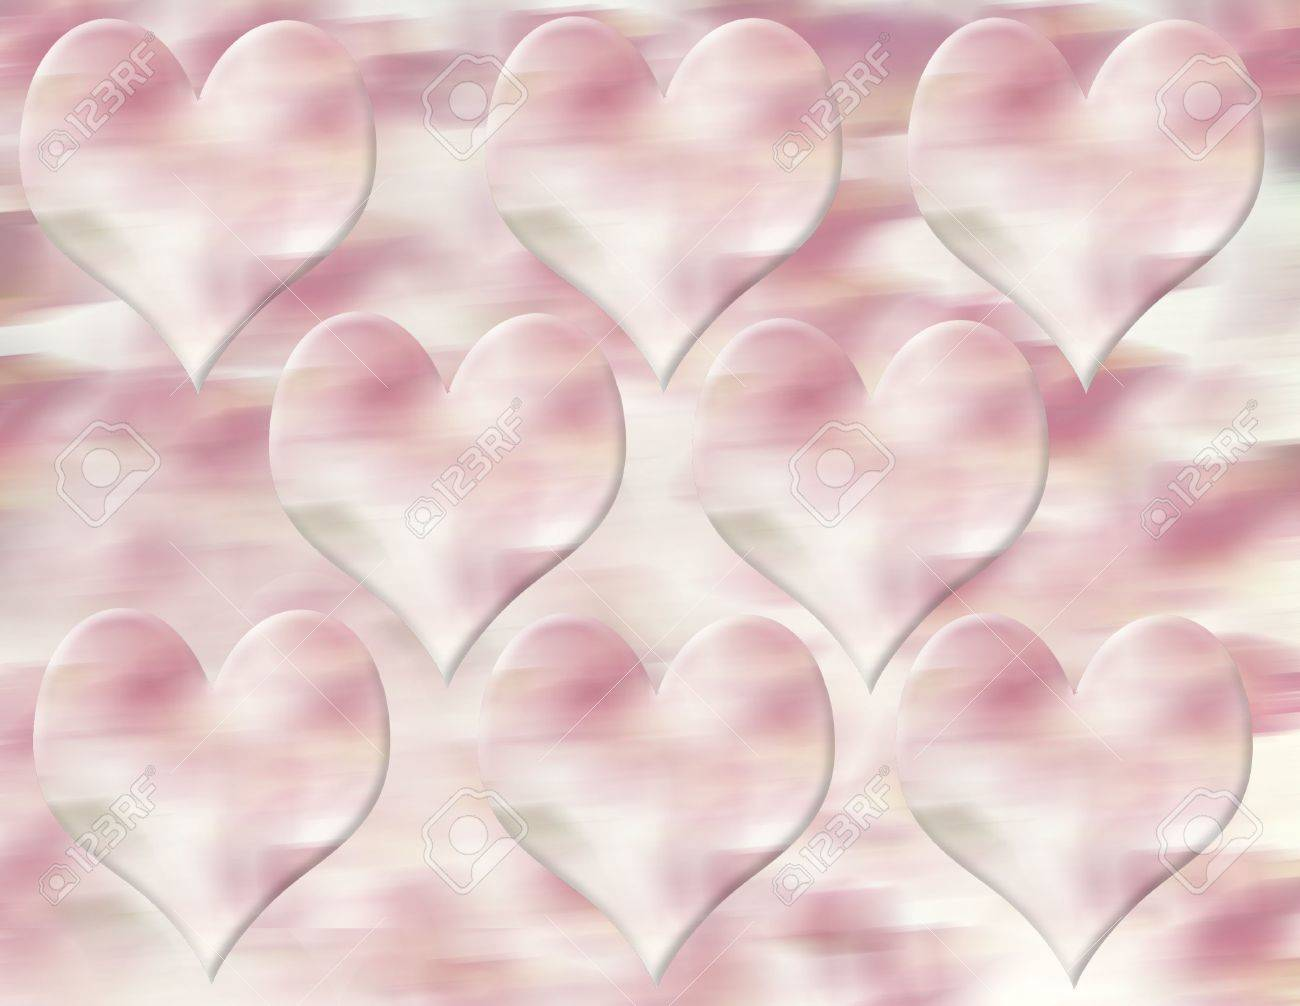 Pink Hearts Background Stock Photo - 452836